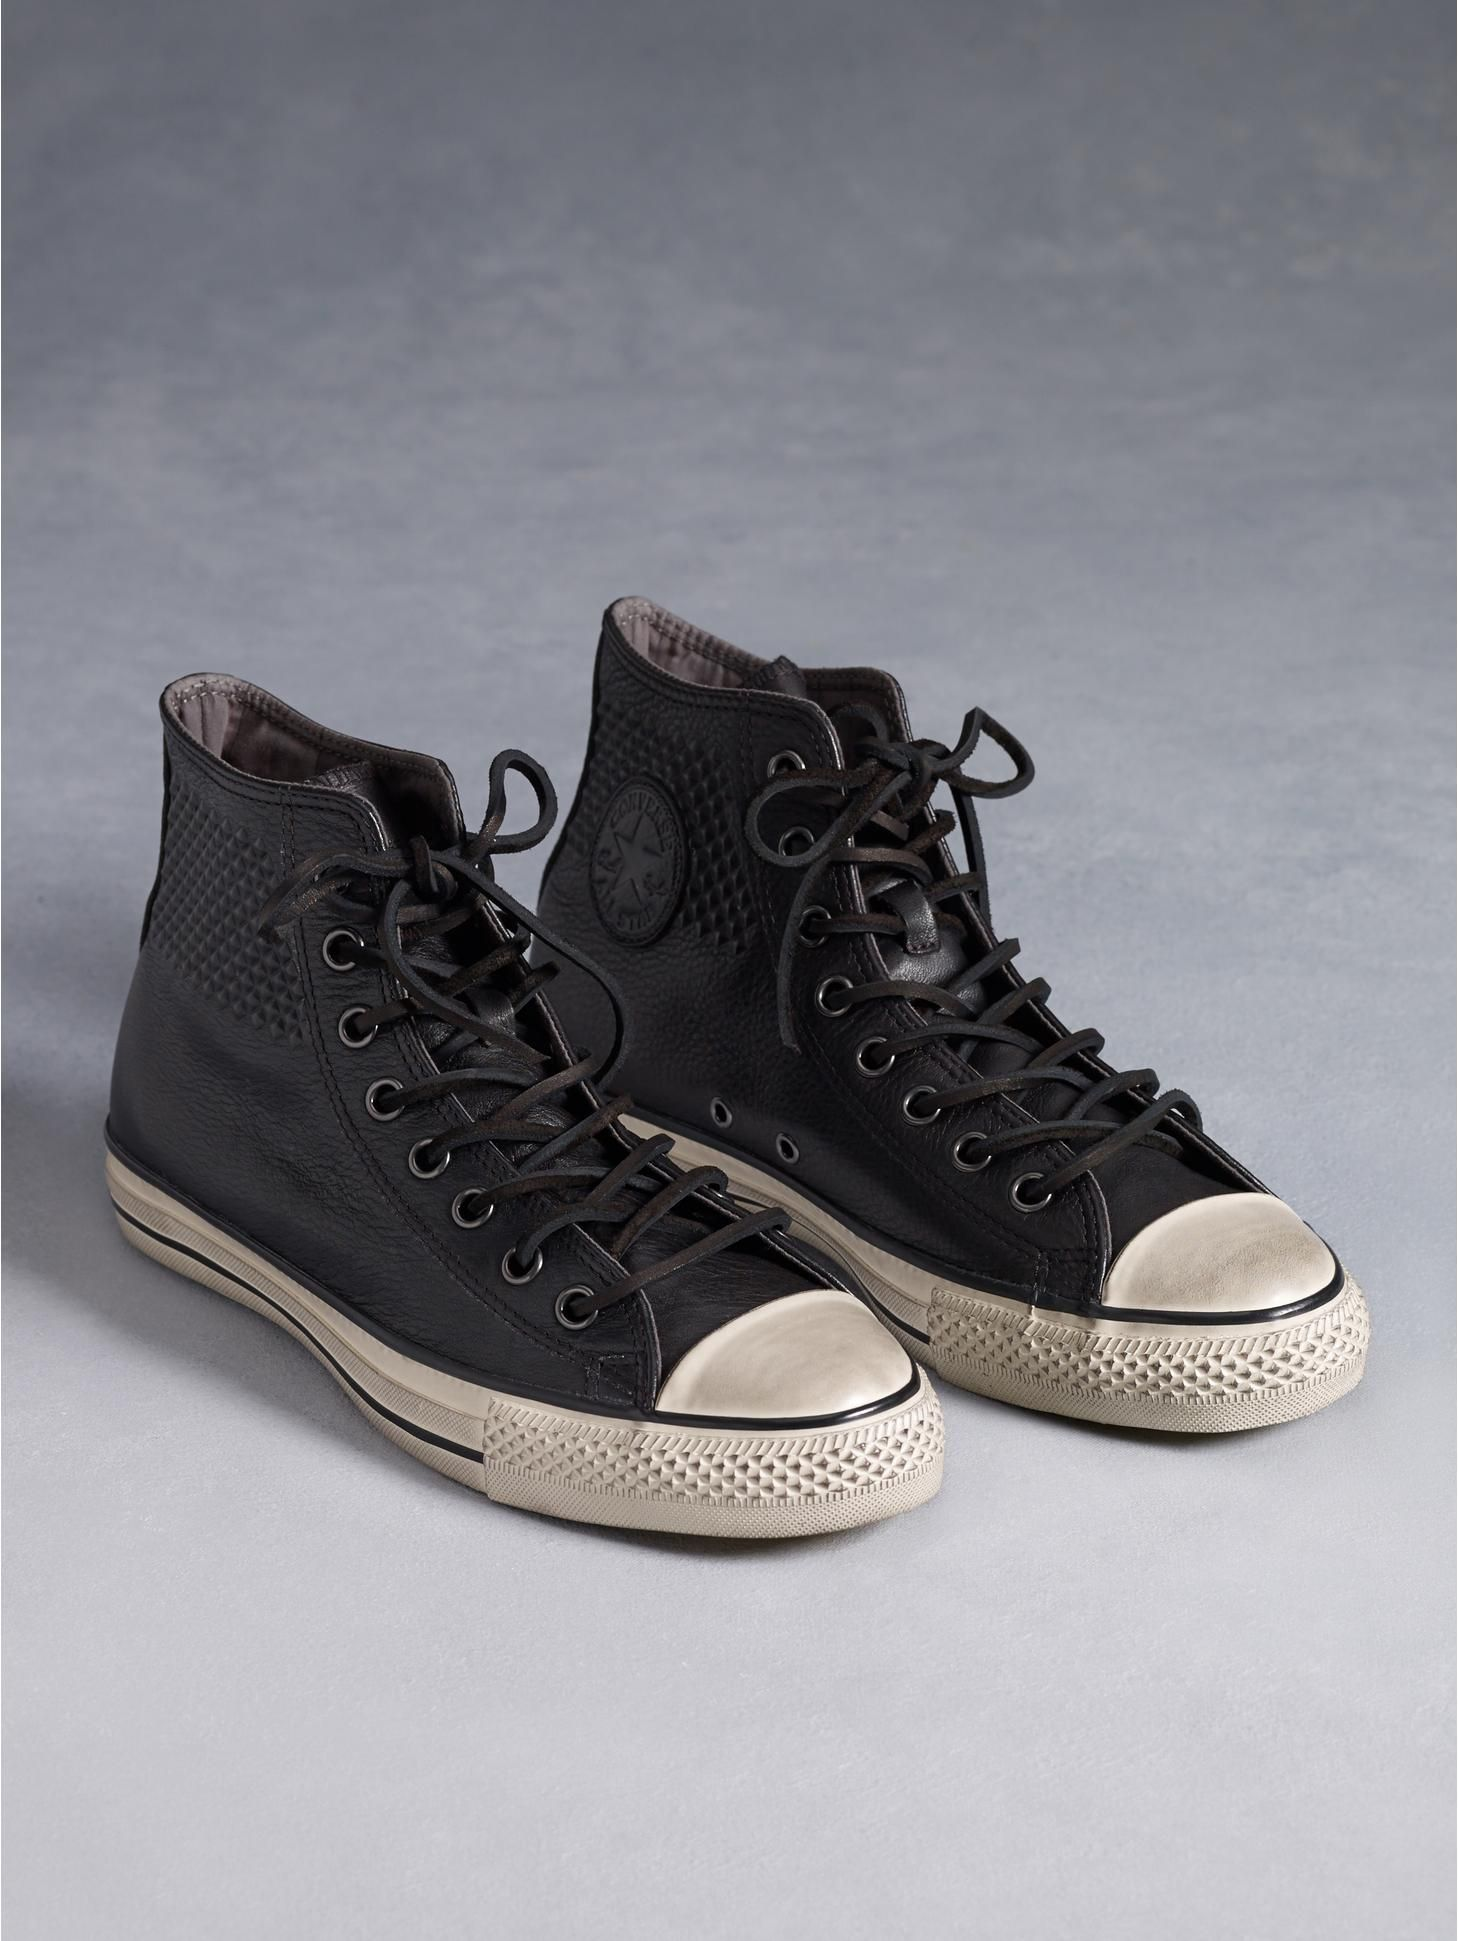 e23fde566ae3 Converse by John Varvatos Chuck Taylor All-Star Embossed Leather Chuck  Taylor Hi-Top Shoes